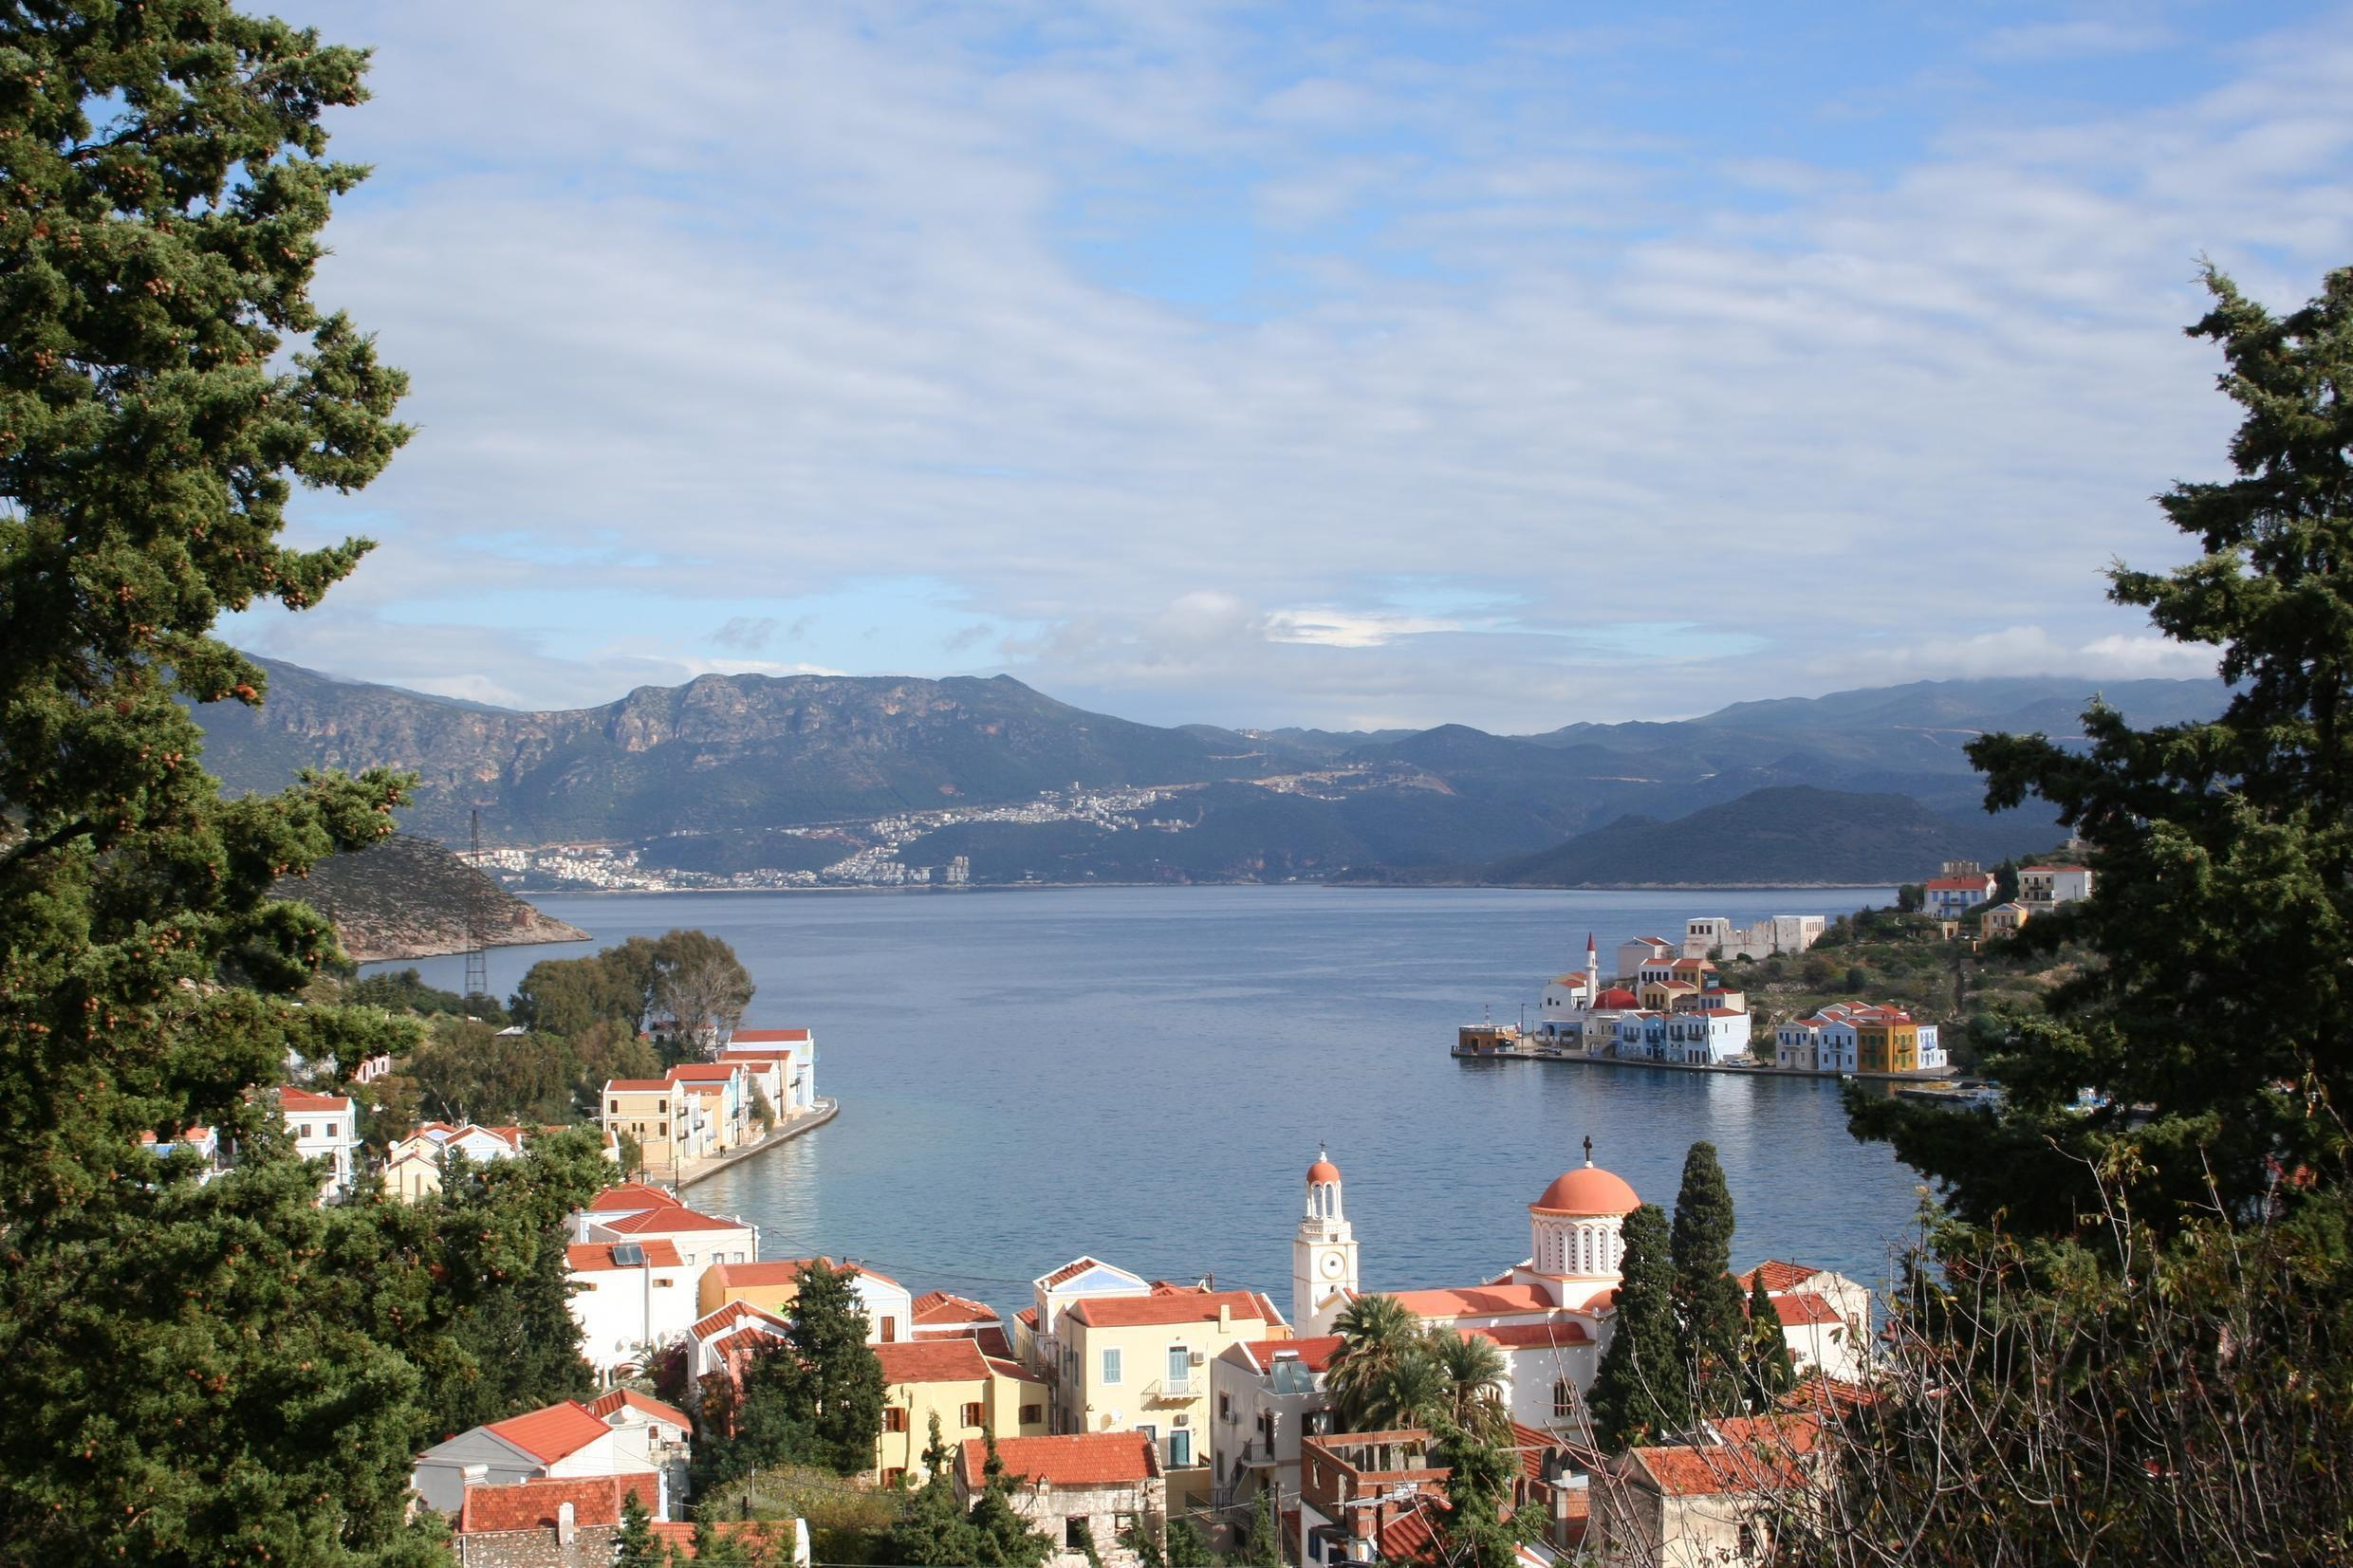 The Greek island of Meyisti lies just seven kilometres from the mainland Turkish town of Kas